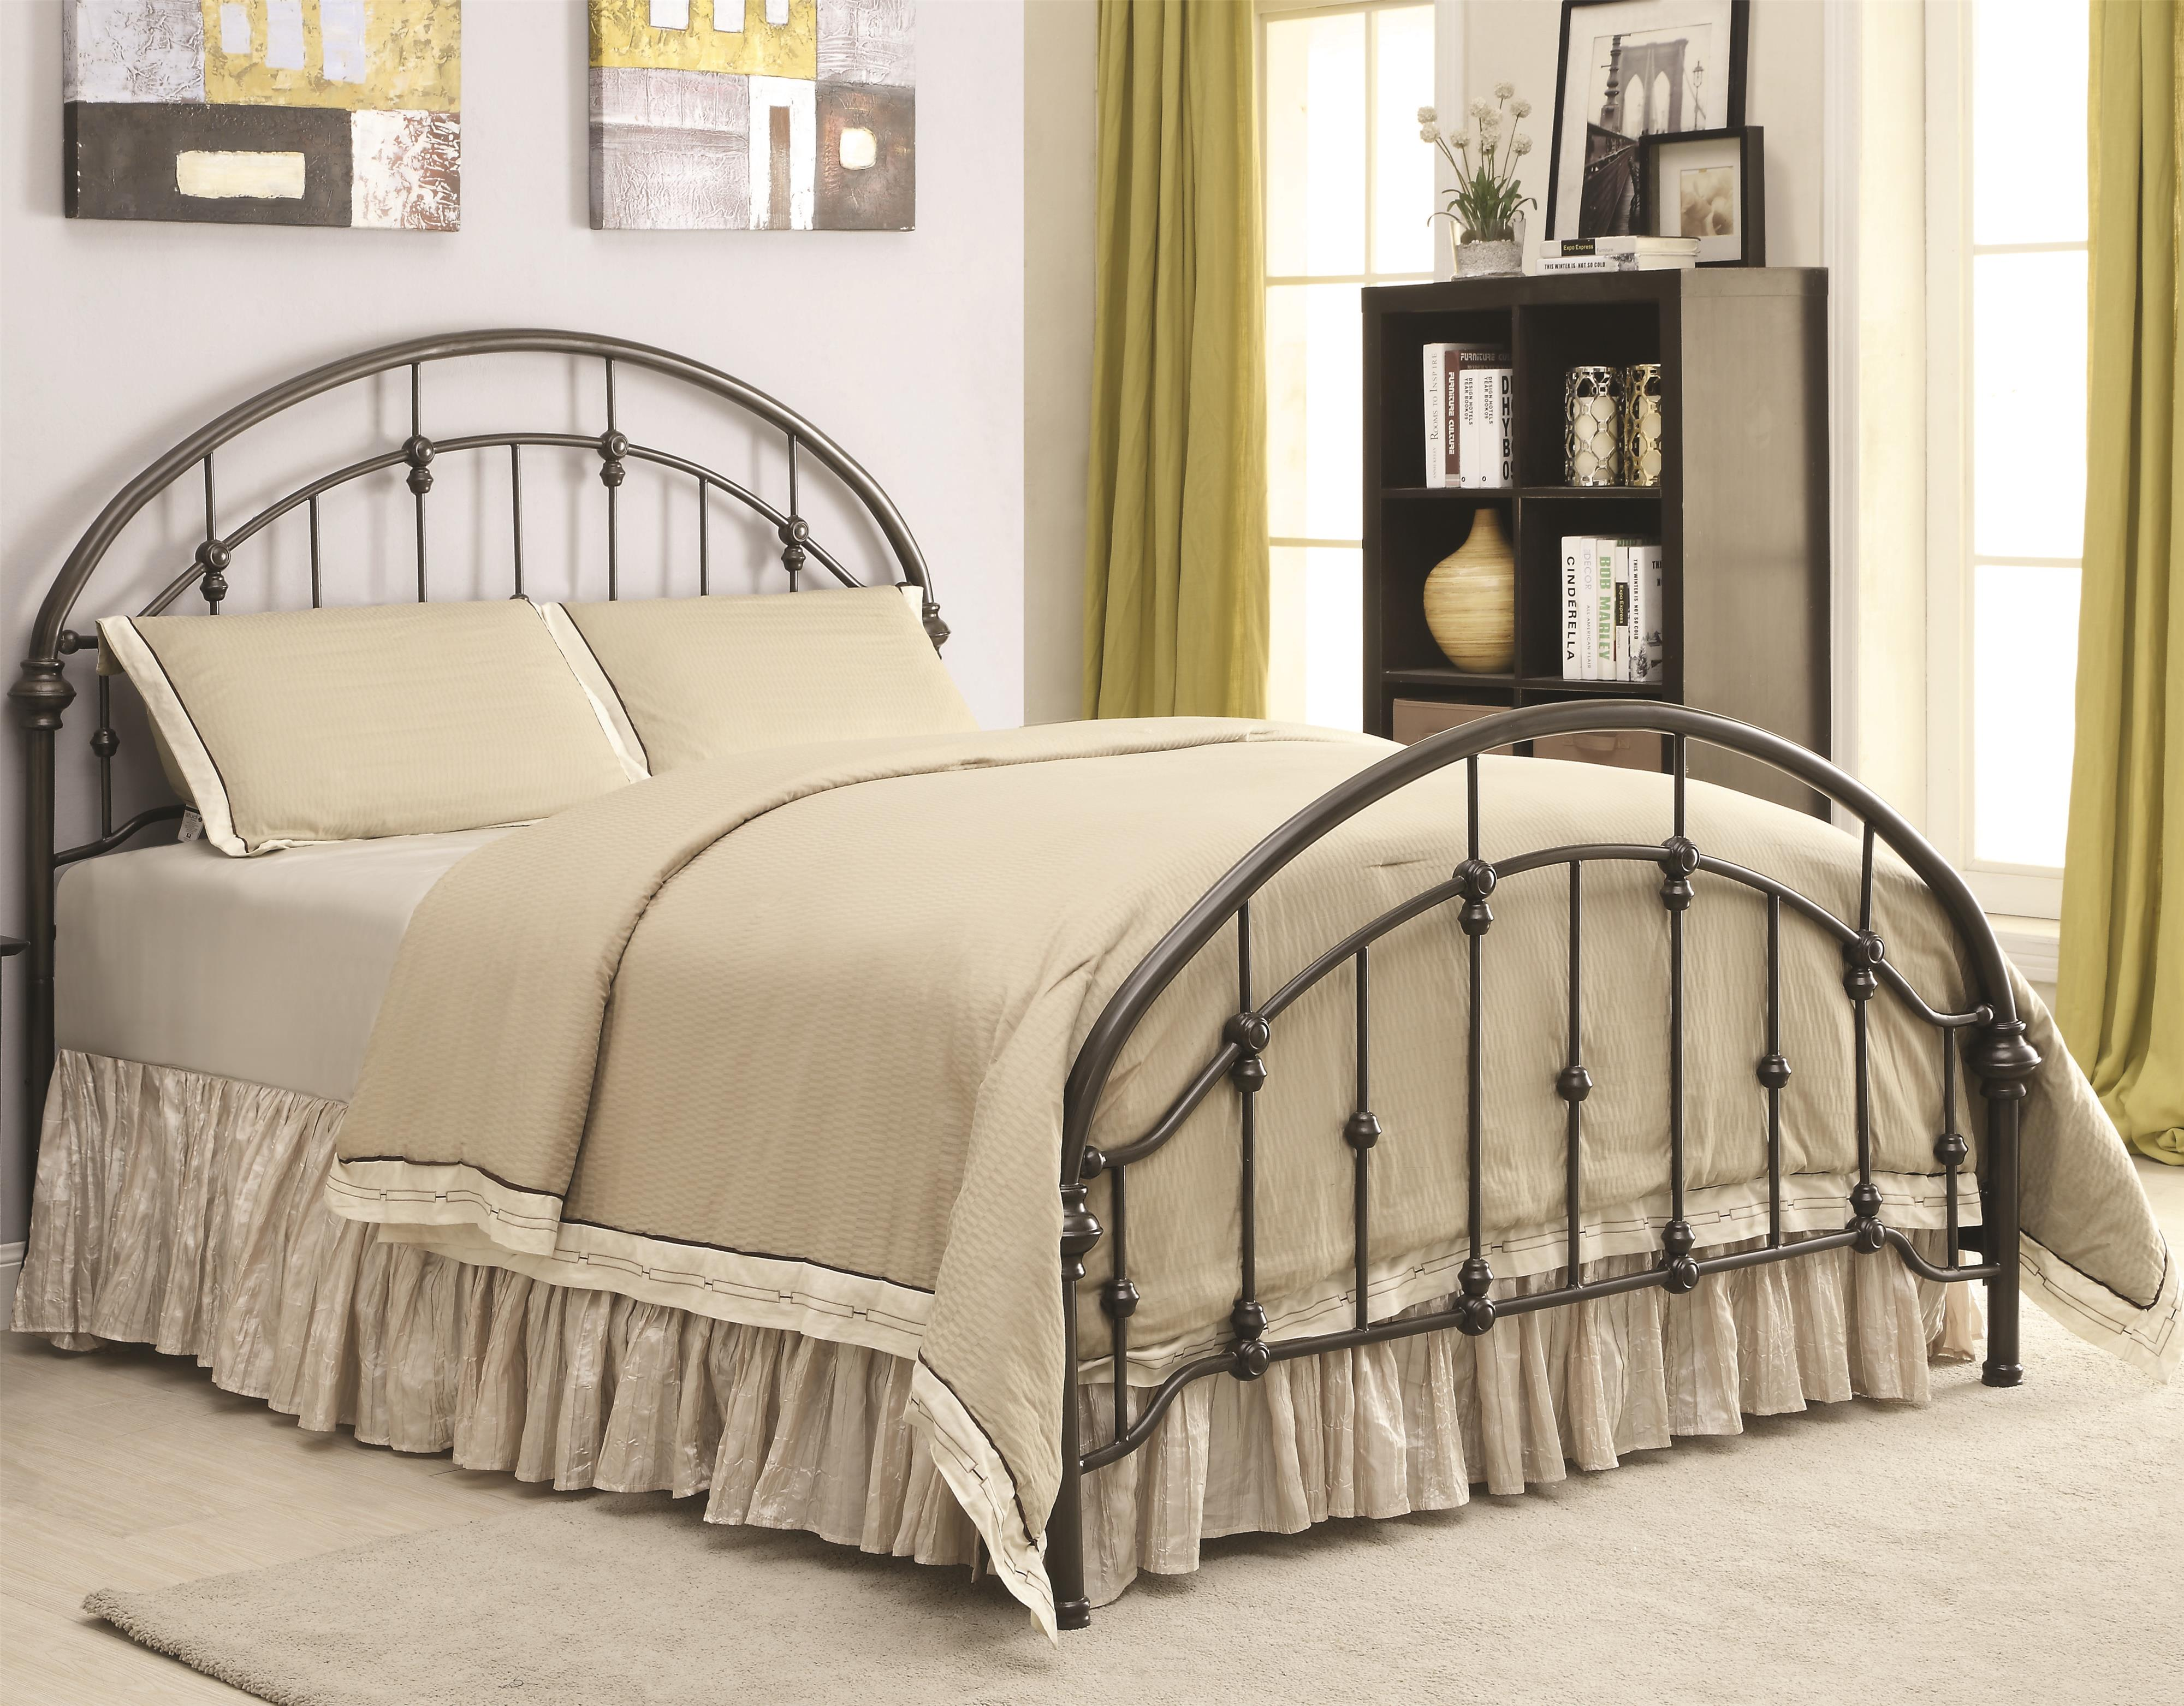 Coaster Iron Beds And Headboards Metal Curved Queen Bed